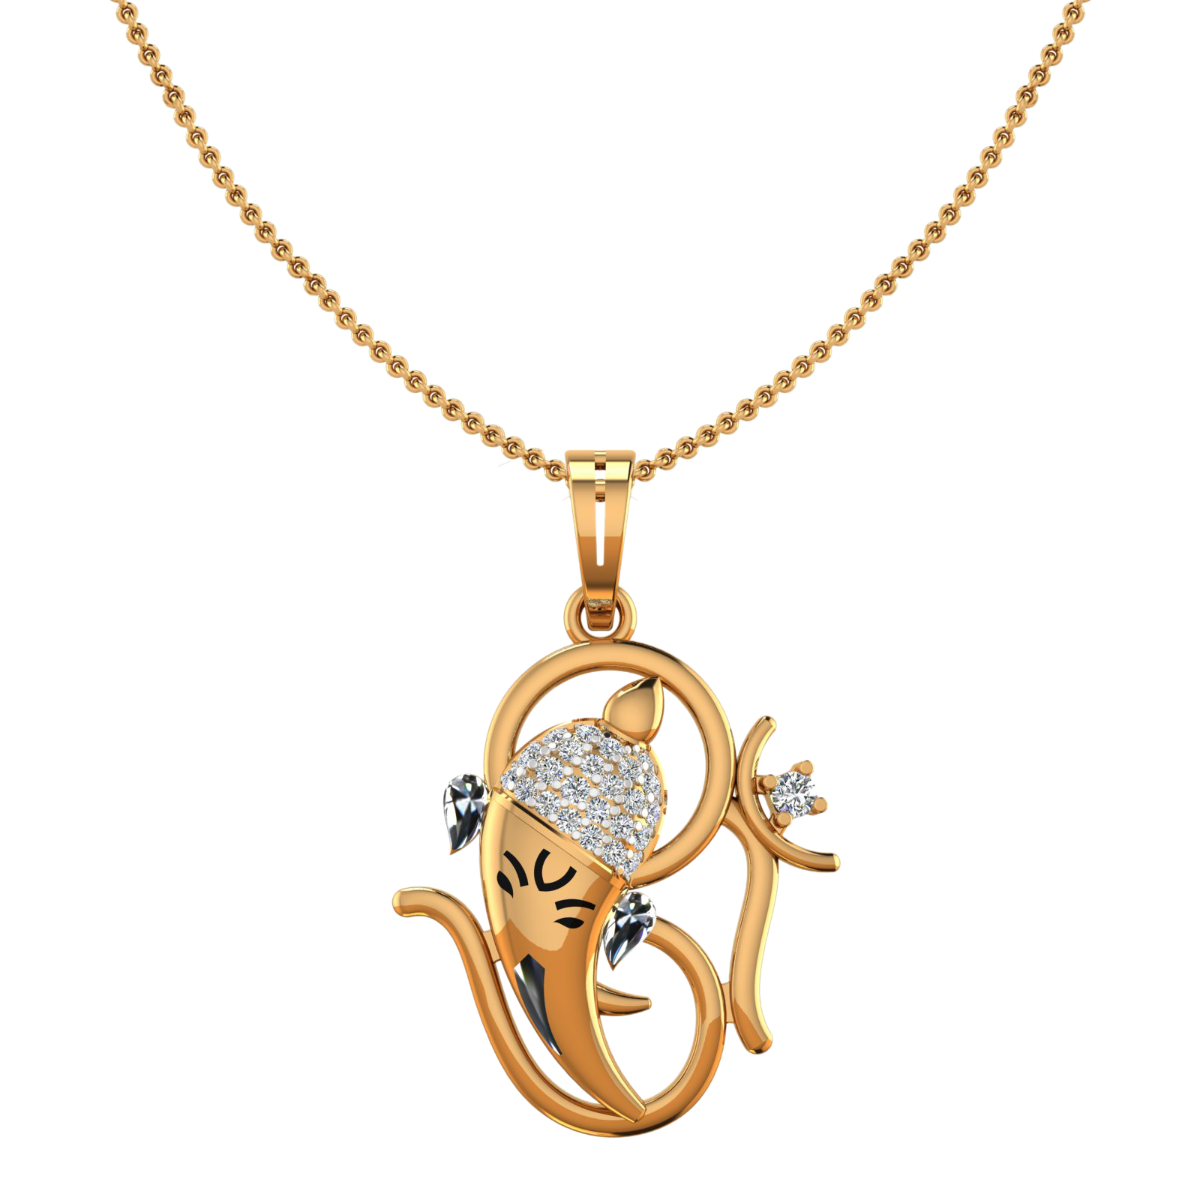 Shree Ganesha Diamond Pendant